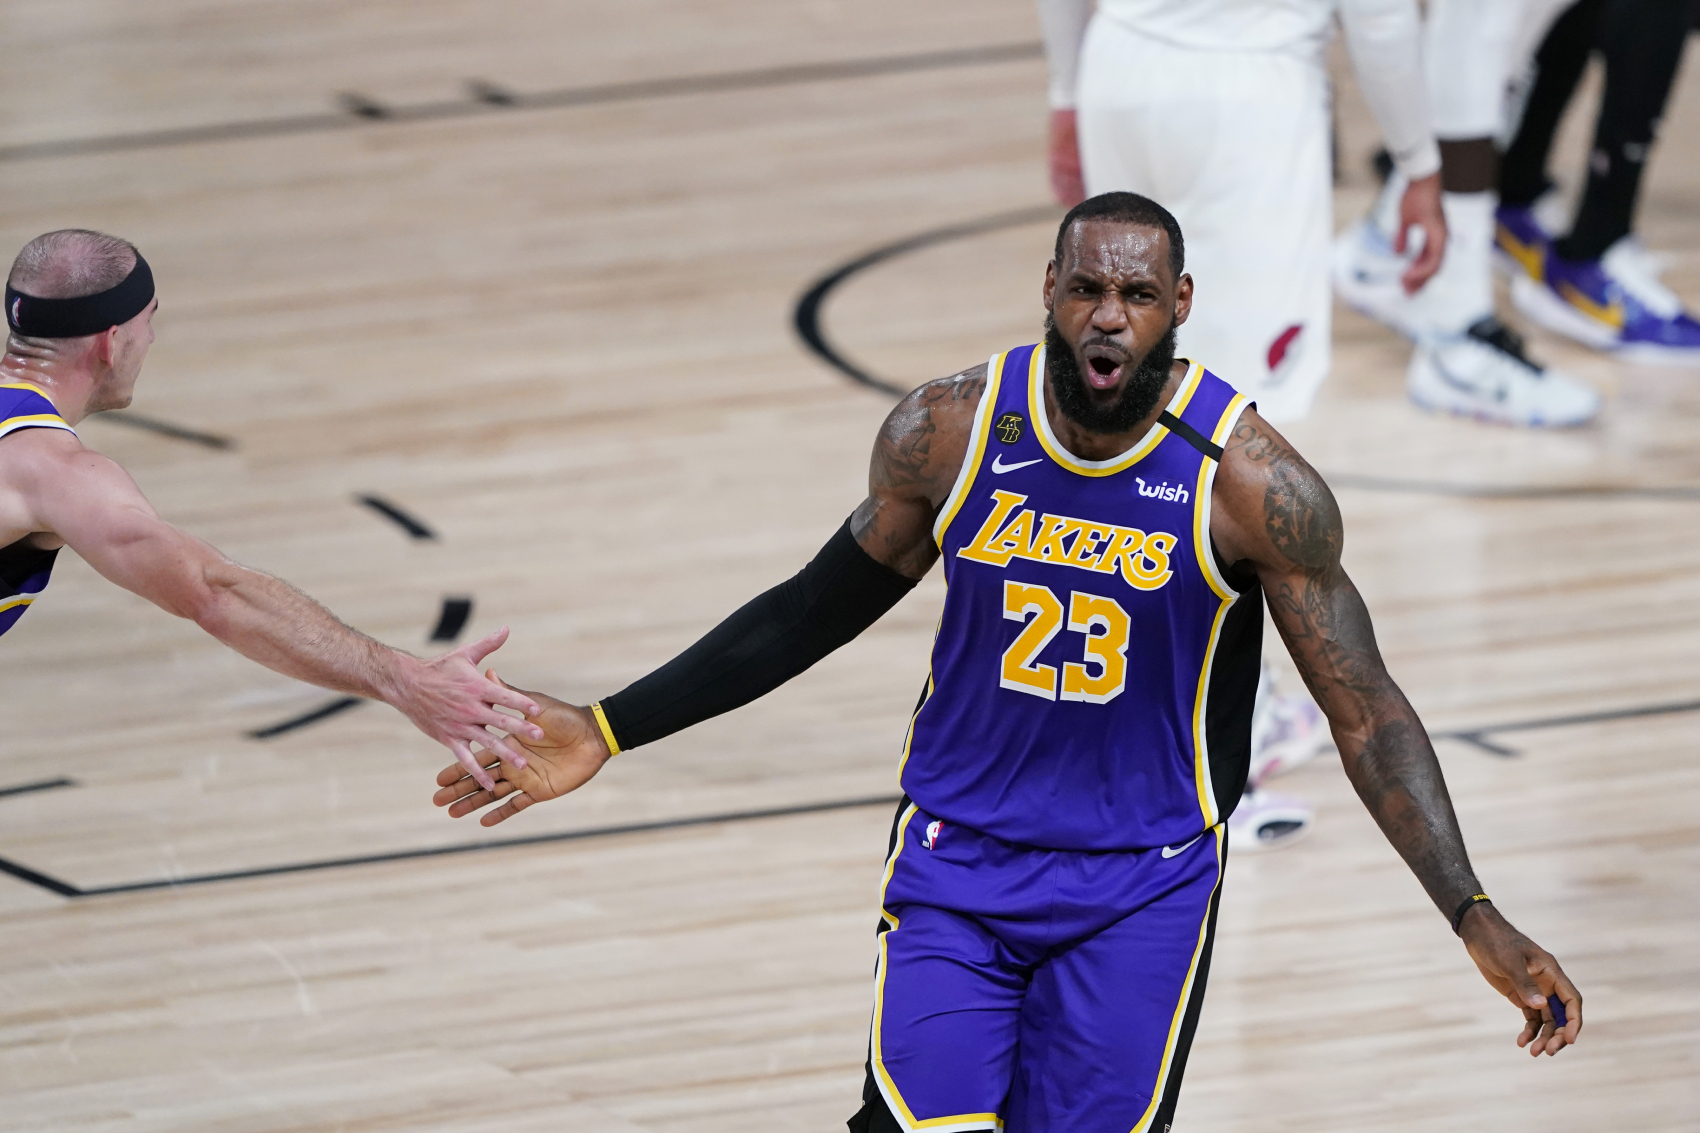 LeBron James and the LA Lakers are in the NBA Finals. Lakers owner Jeanie Buss just revealed how much longer she hopes James plays.